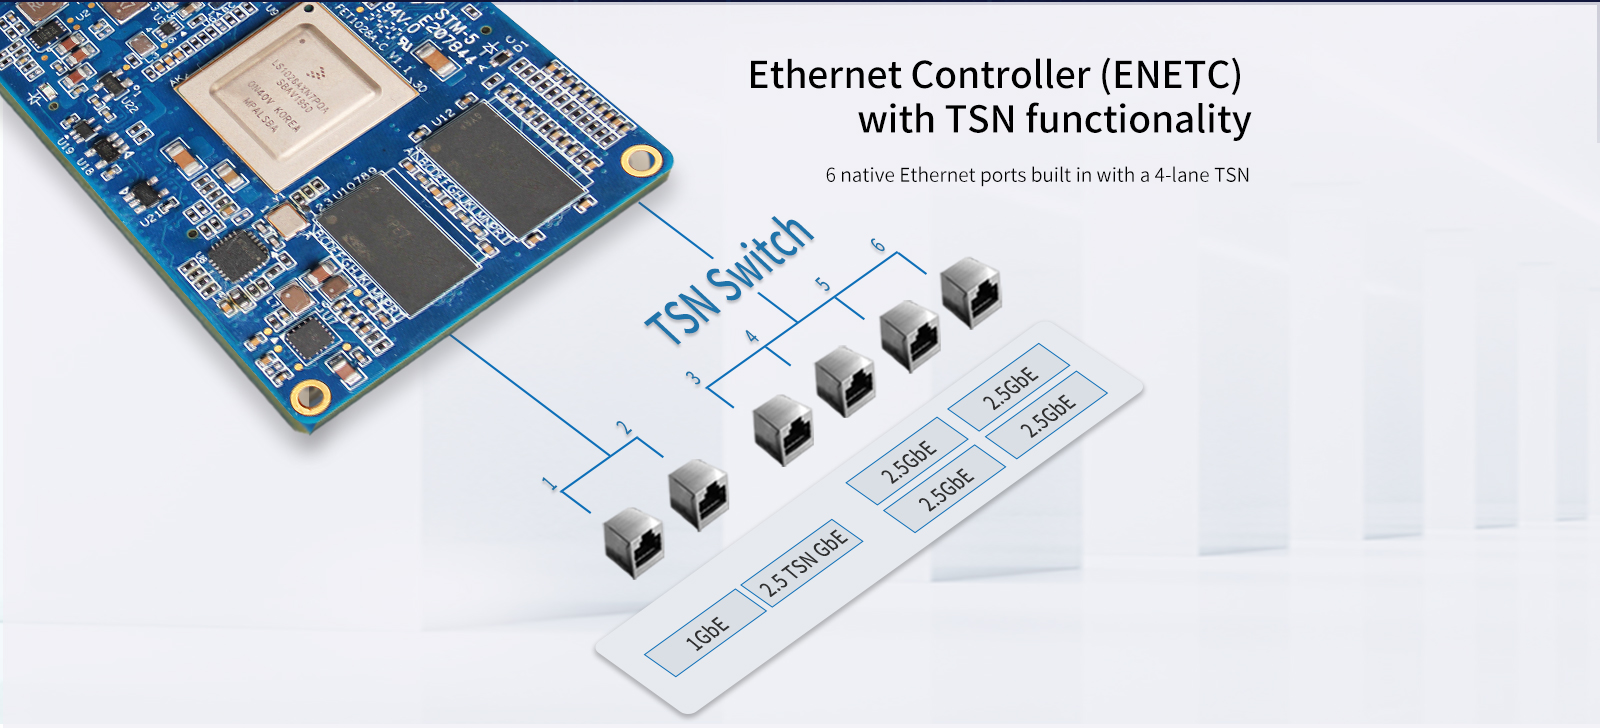 LS1028 Ethernet can support TSN